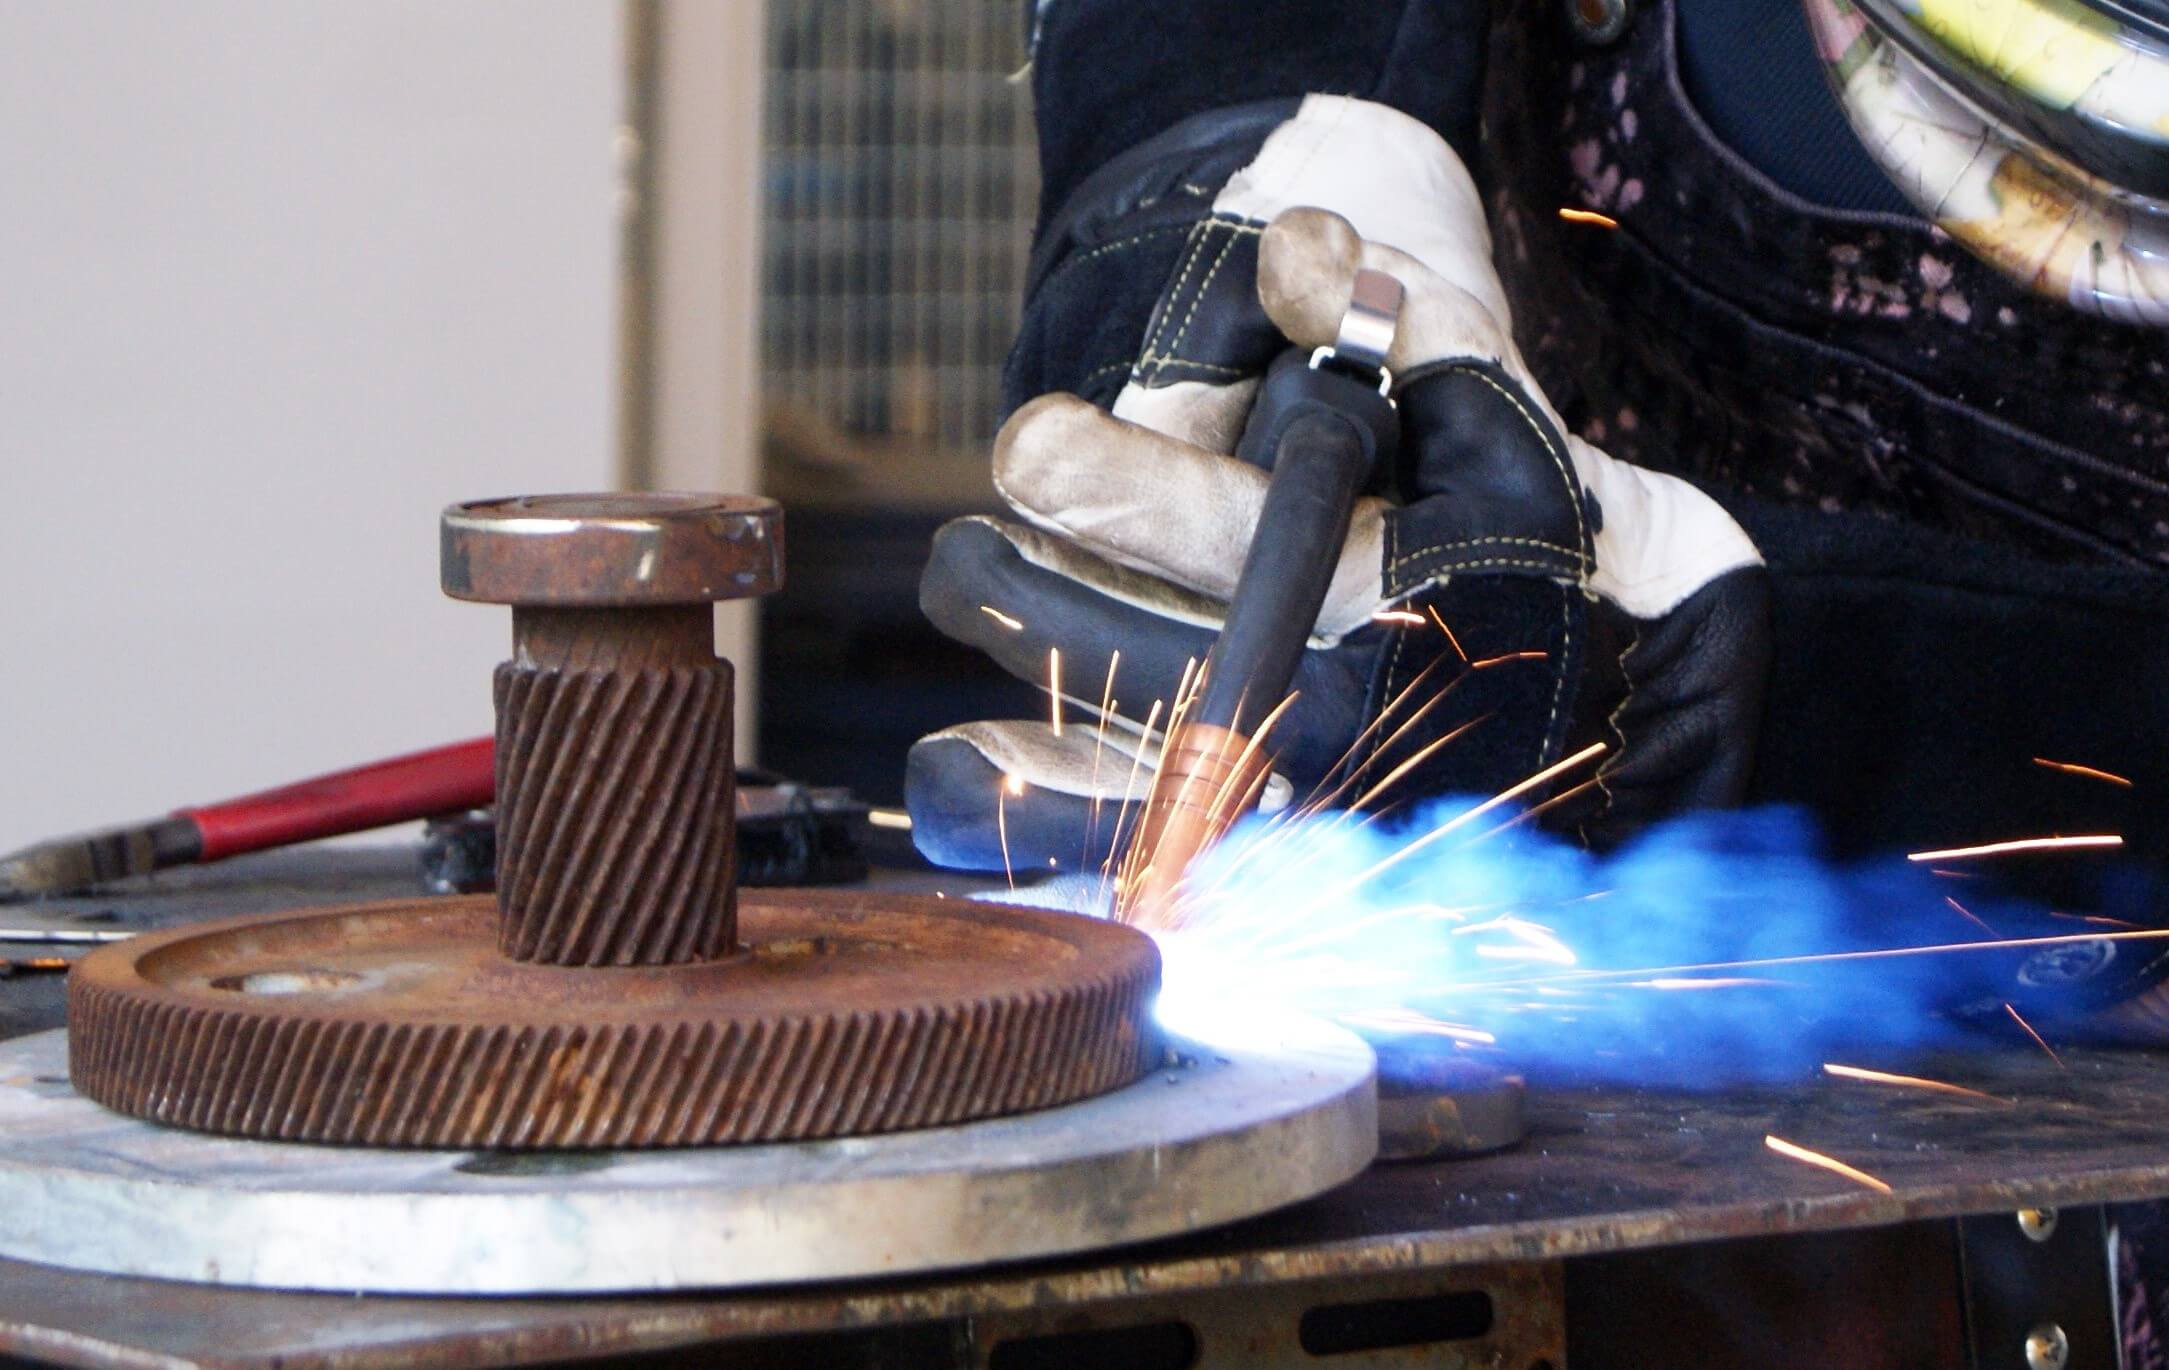 HOW TO PICK THE BEST TYPE OF WELDER FOR A BEGINNER